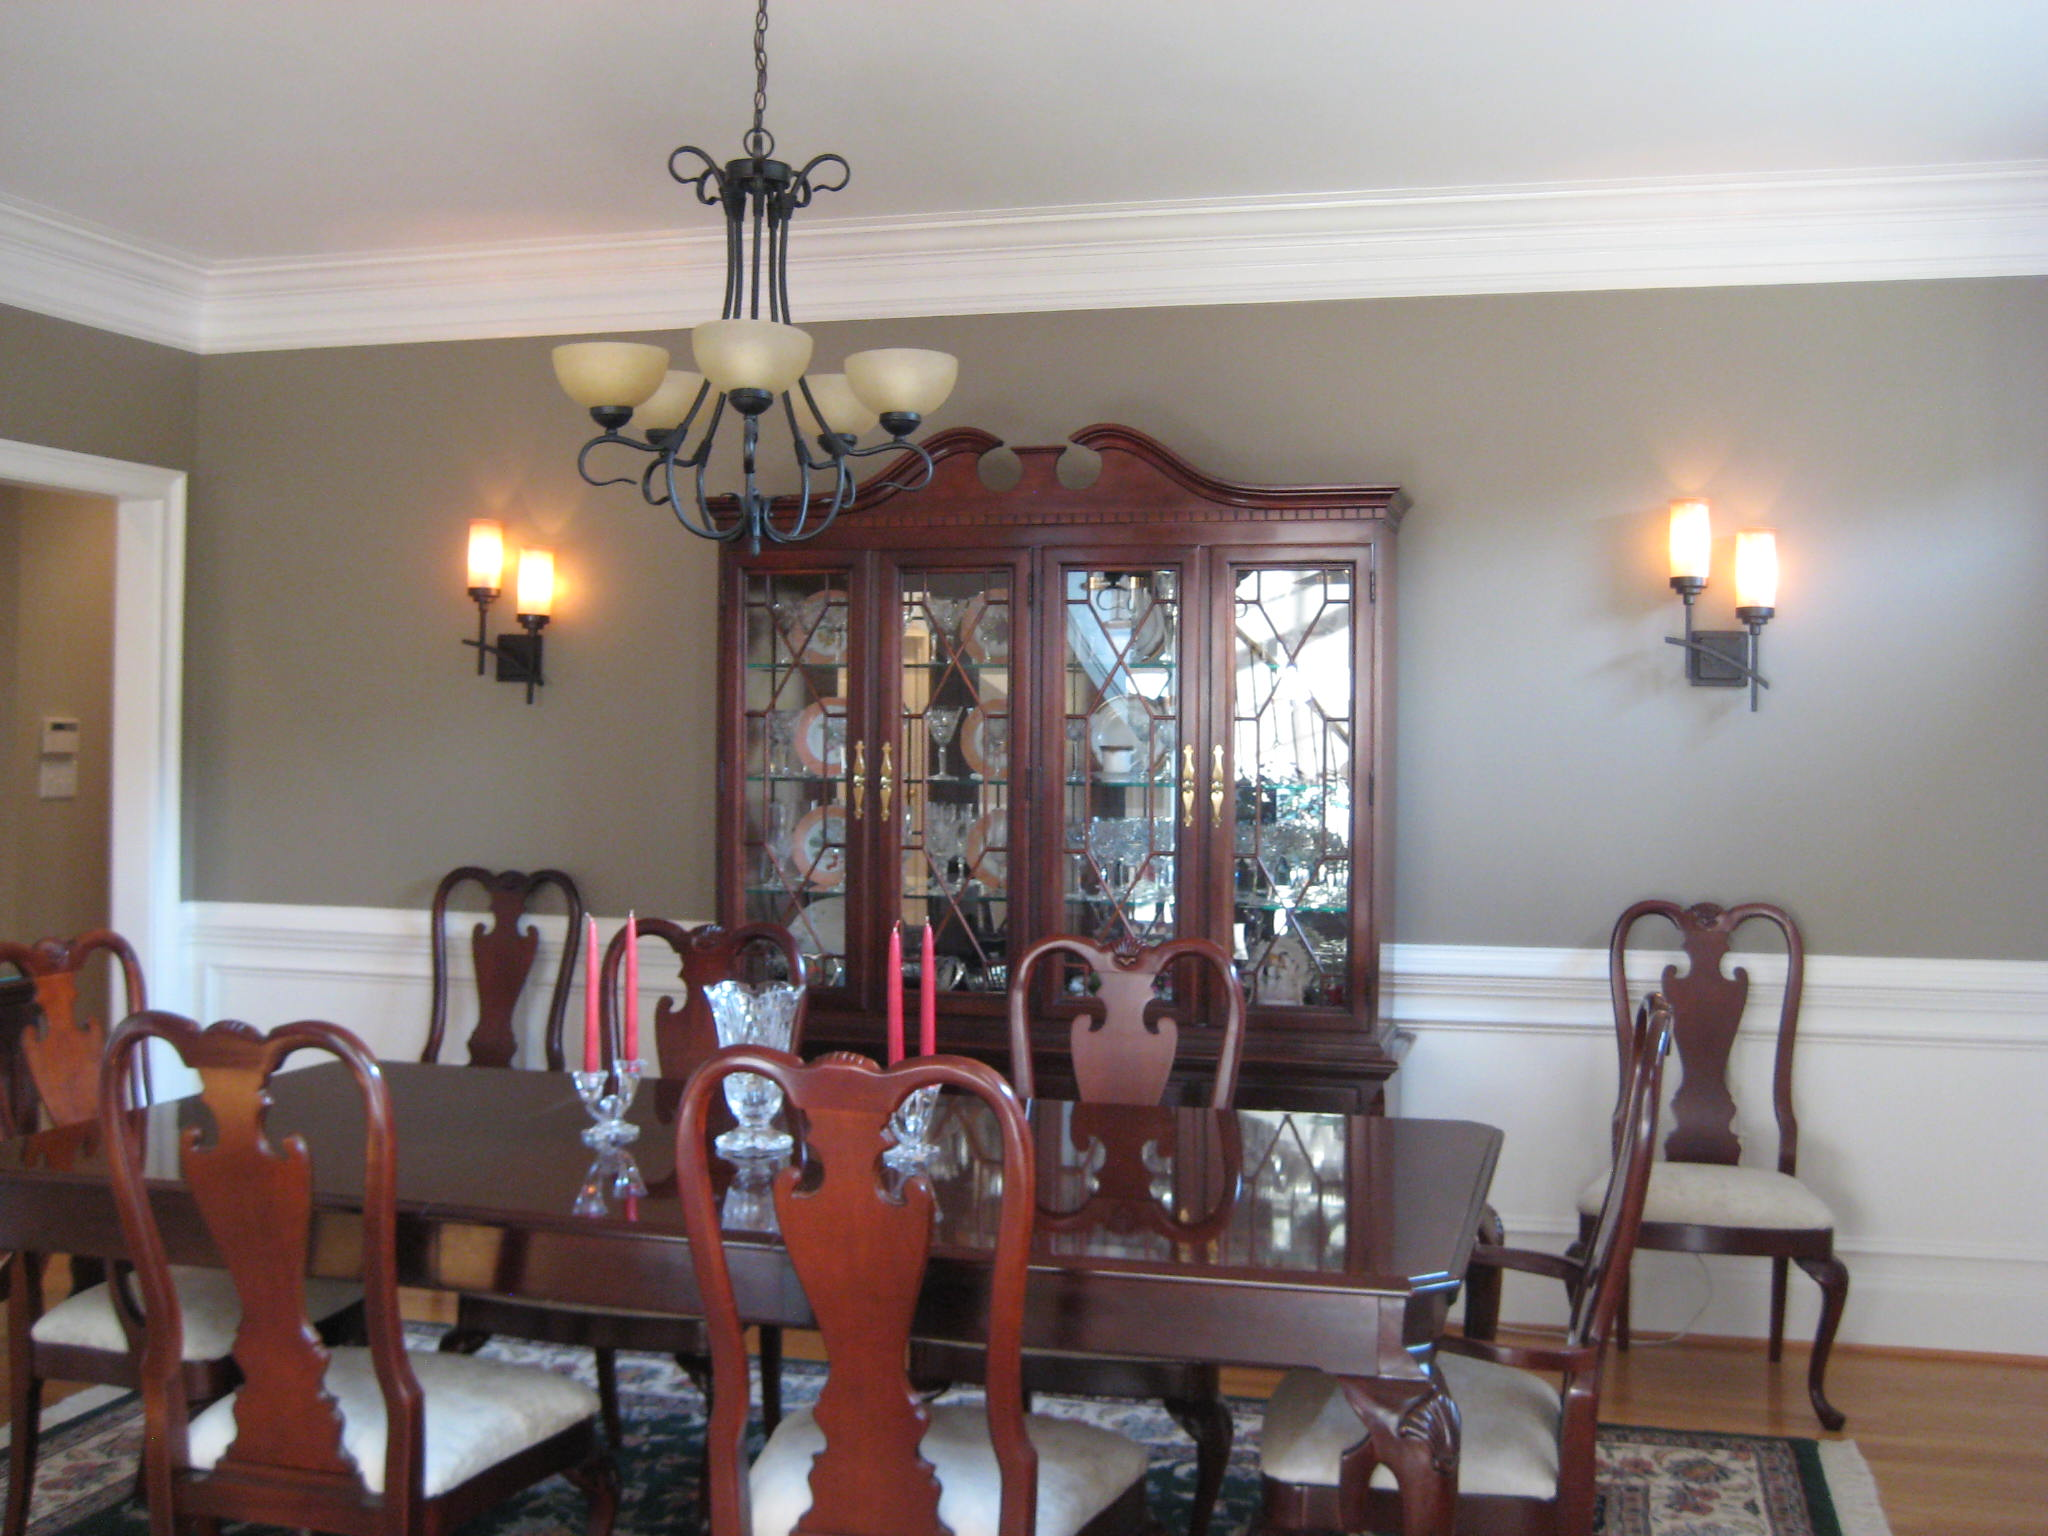 Dining Room adding light sconces with upholstered seats and more.